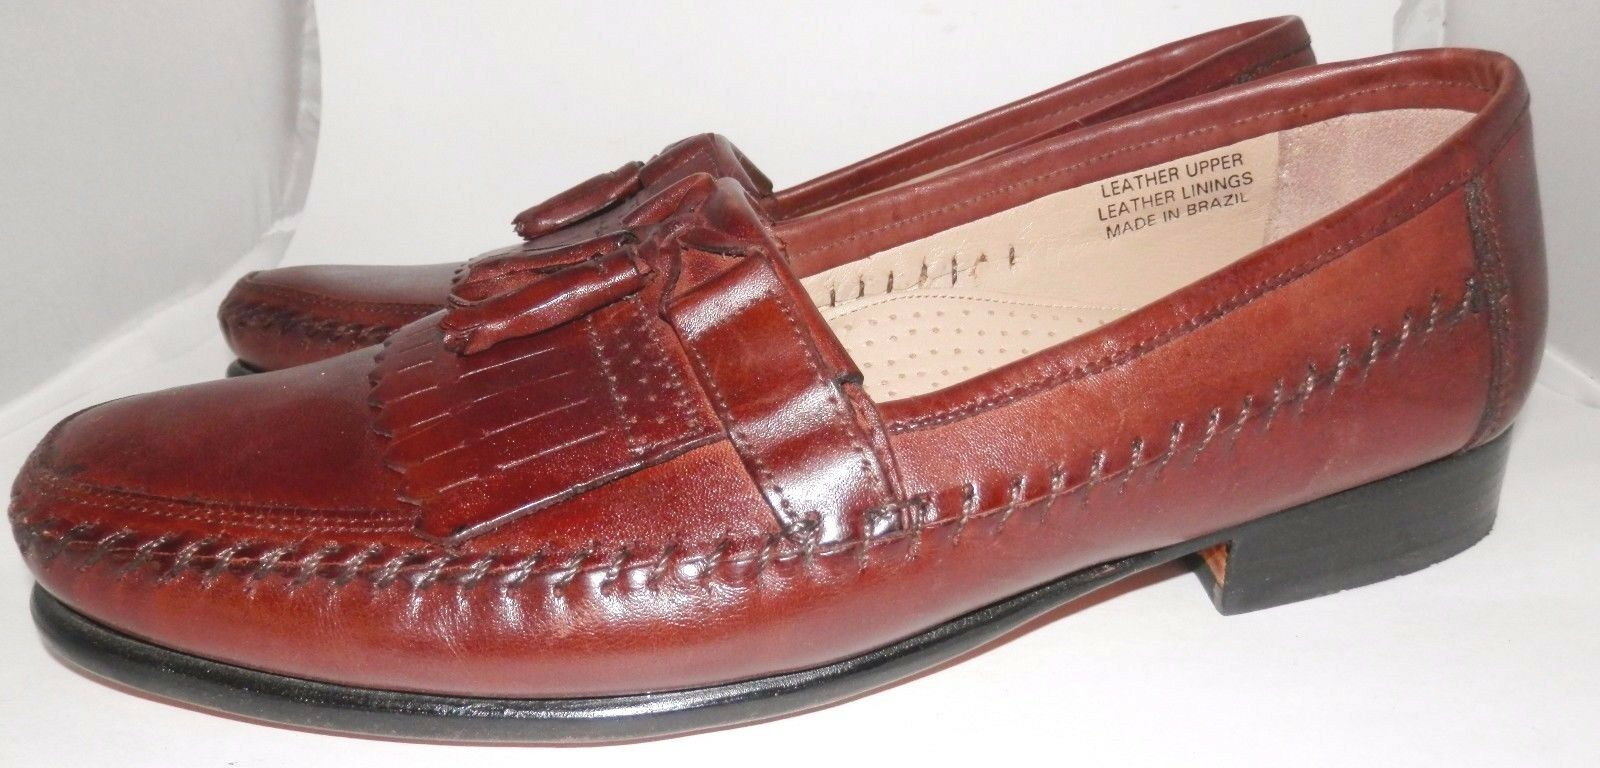 MEN'S Stacy Adams 9.5 M Brown Leather Loafers shoes Comfort Plus Tassels Brazil